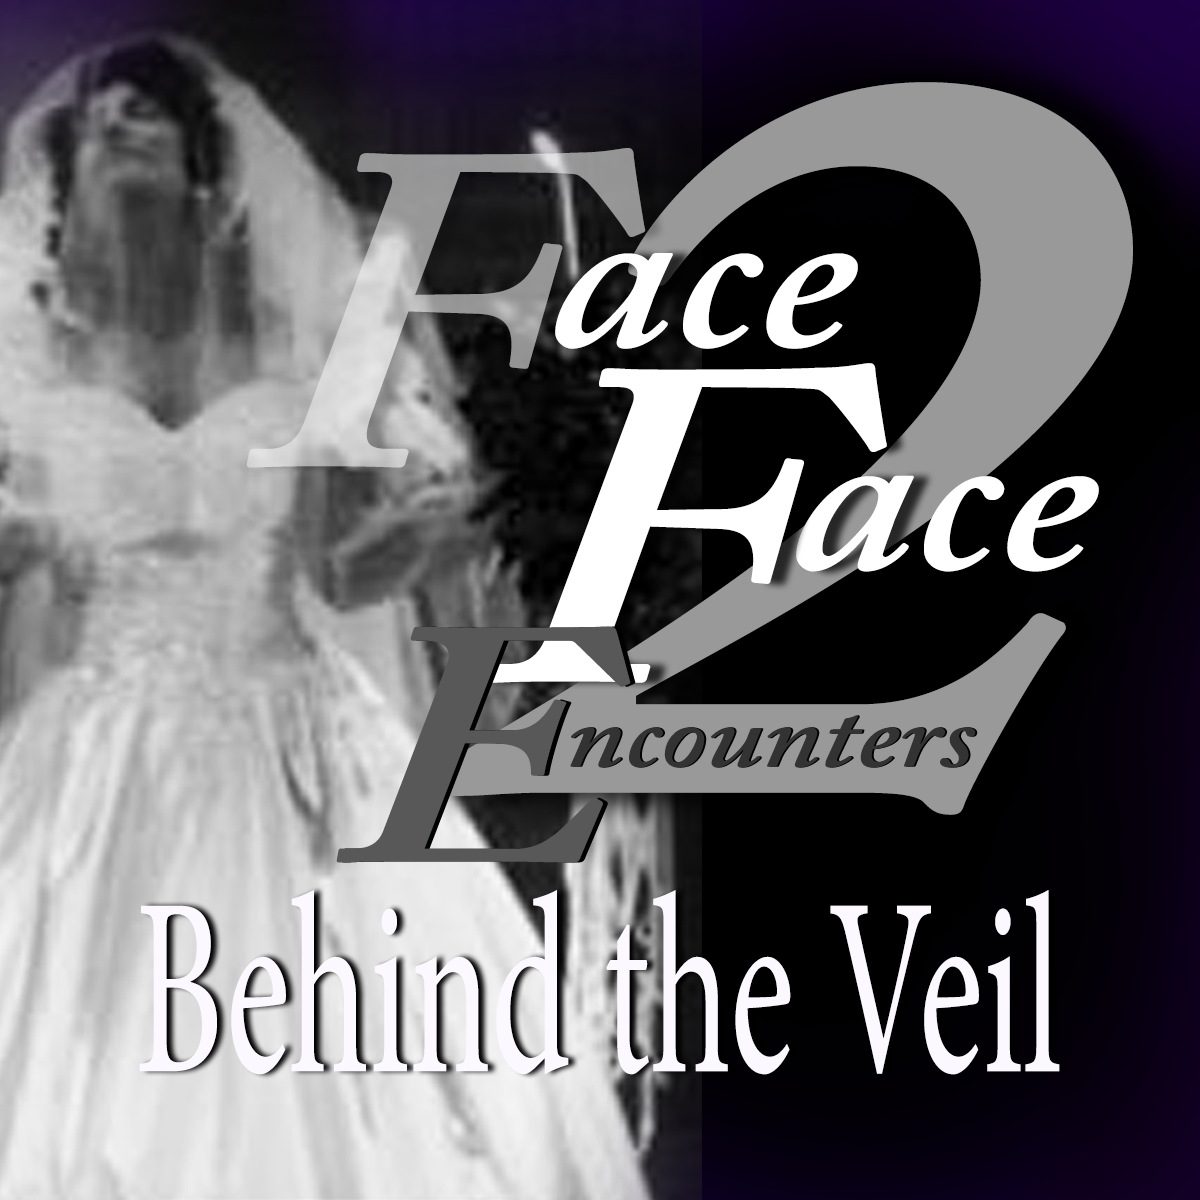 Face2Face-behind the veil